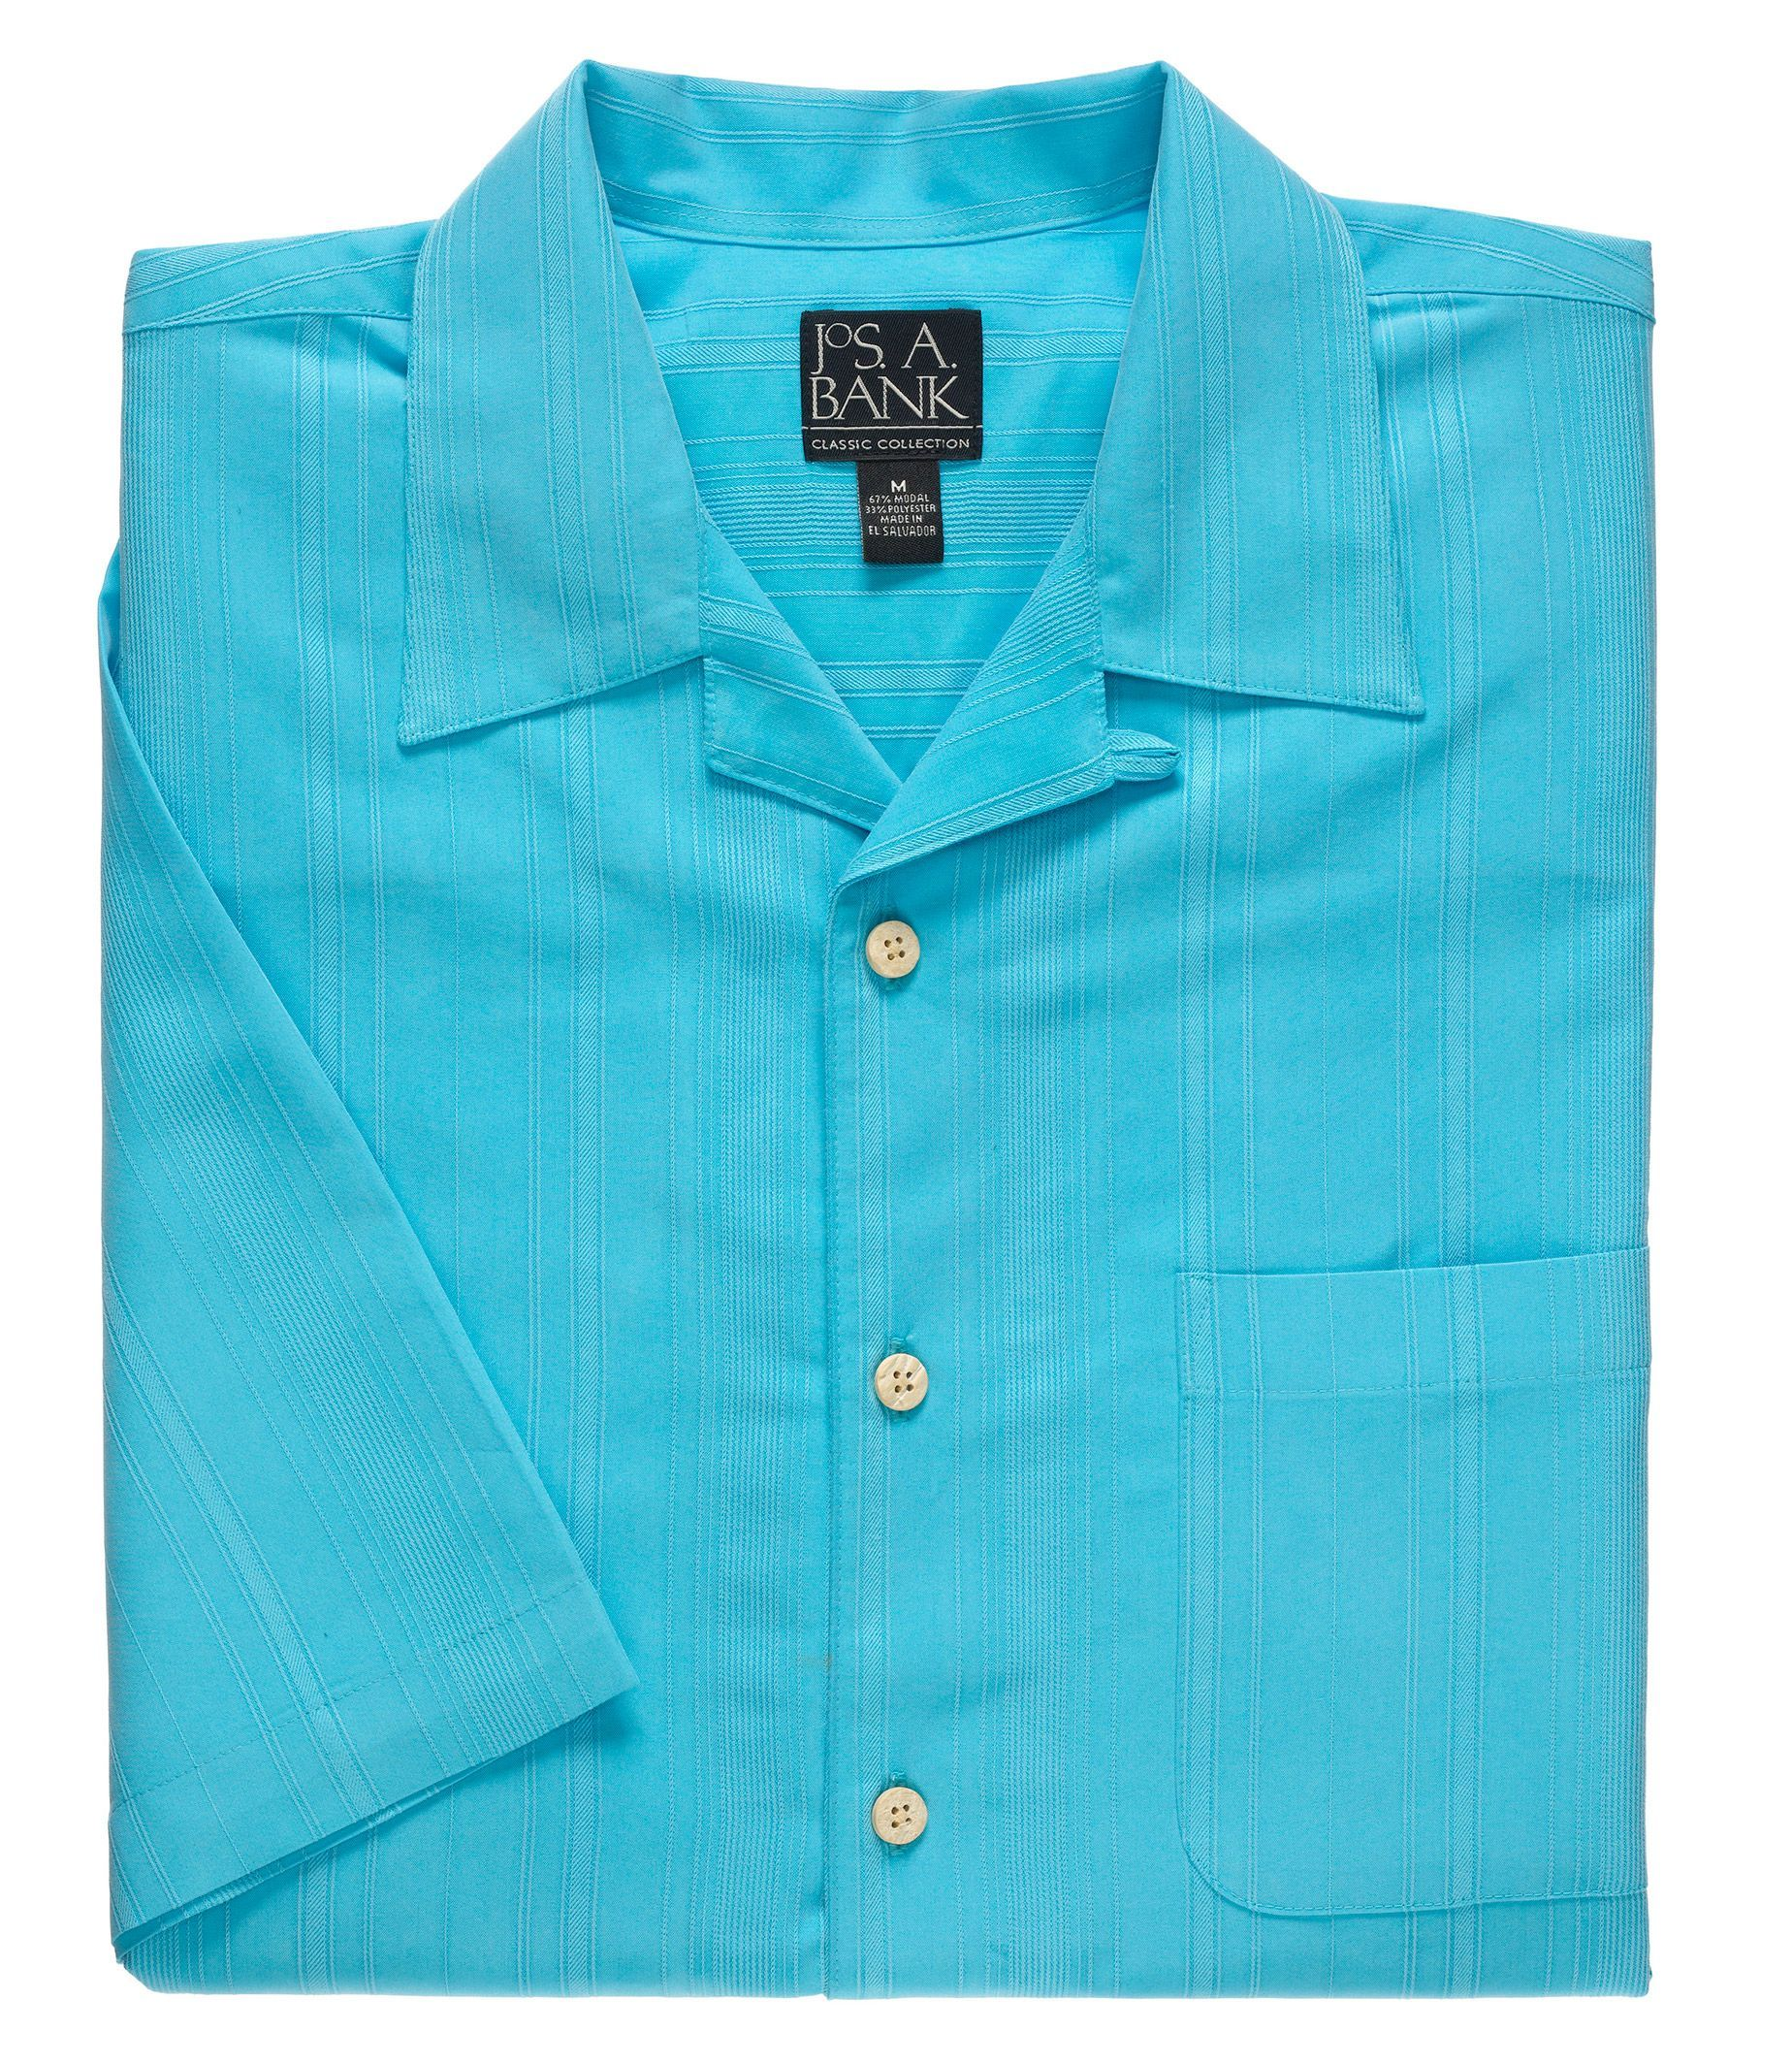 Classic Collection Short-Sleeve Point Collar Sportshirt CLEARANCE